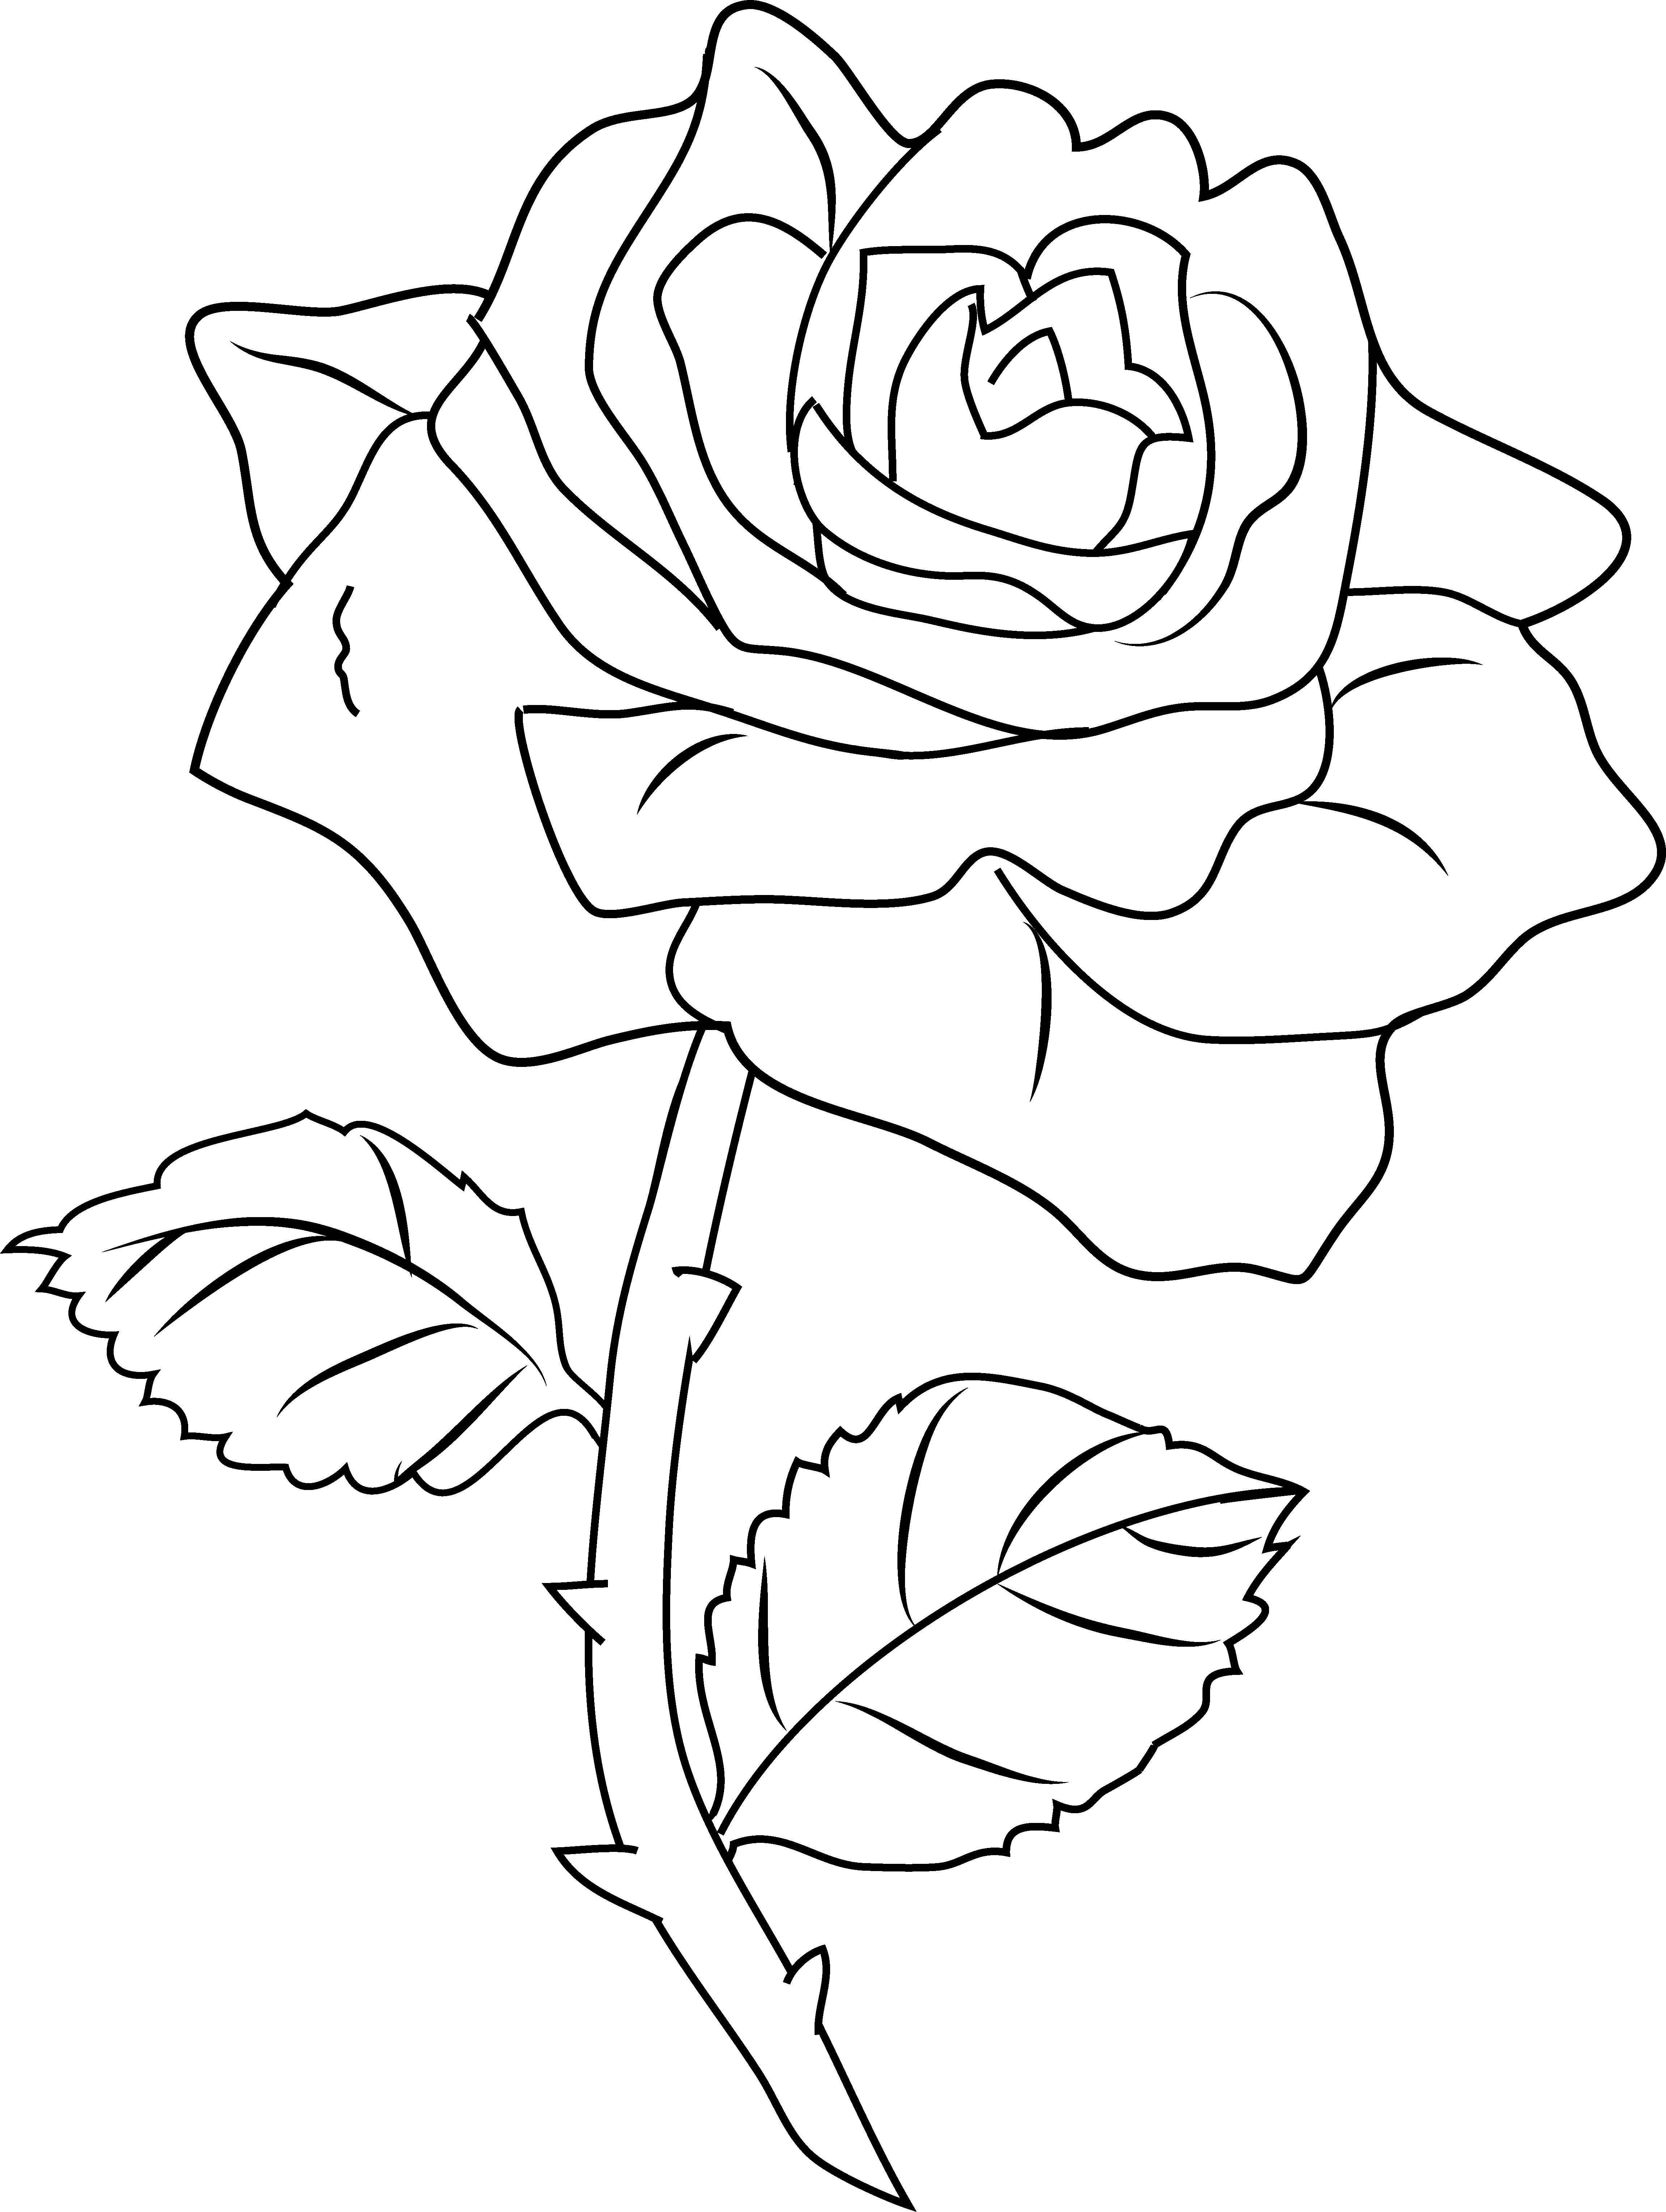 red rose rose coloring pages beautiful red rose flower coloring page kids play color rose pages coloring rose red